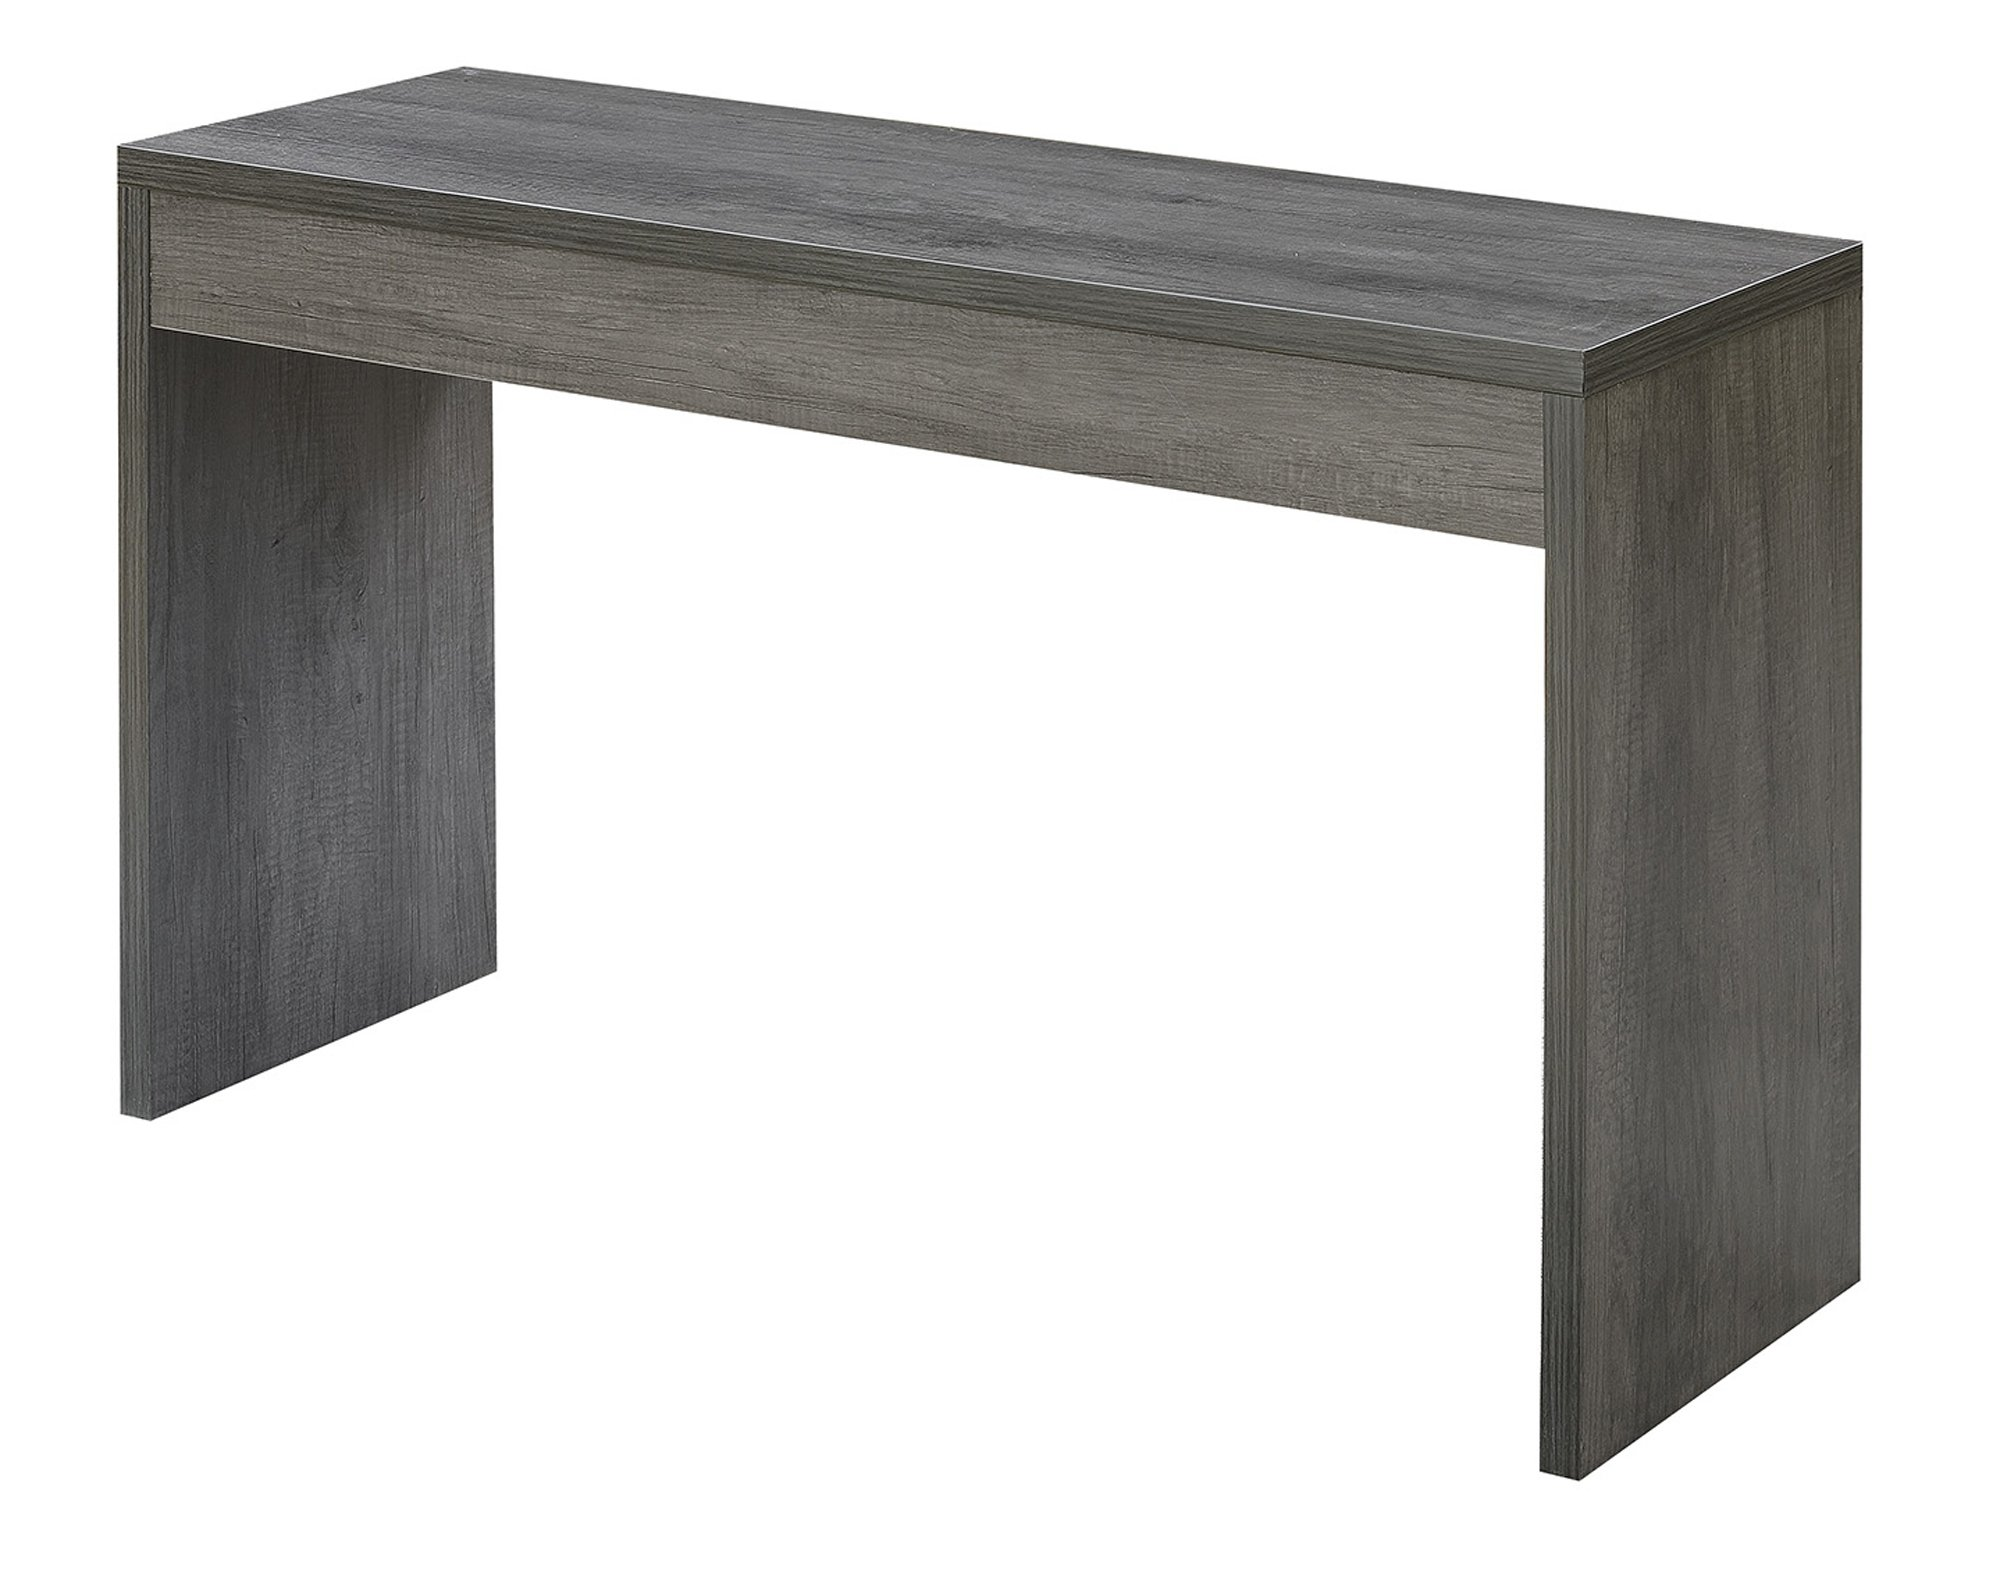 Convenience Concepts 111091WGY Northfield Hall Console Table, Weathered Gray